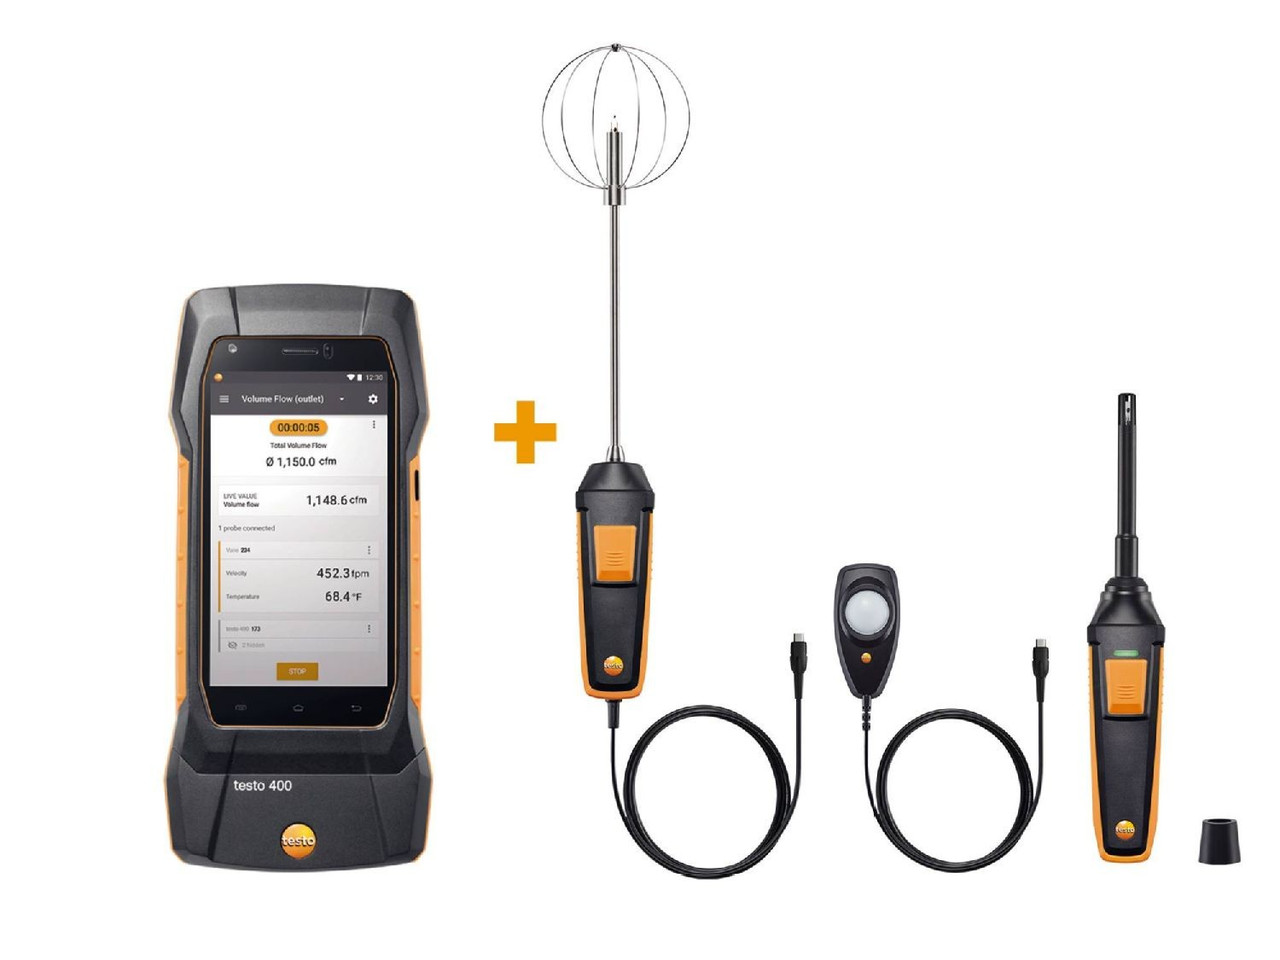 testo 400 Comfort kit - for comfort professionals in high performance buildings - 0563 0409